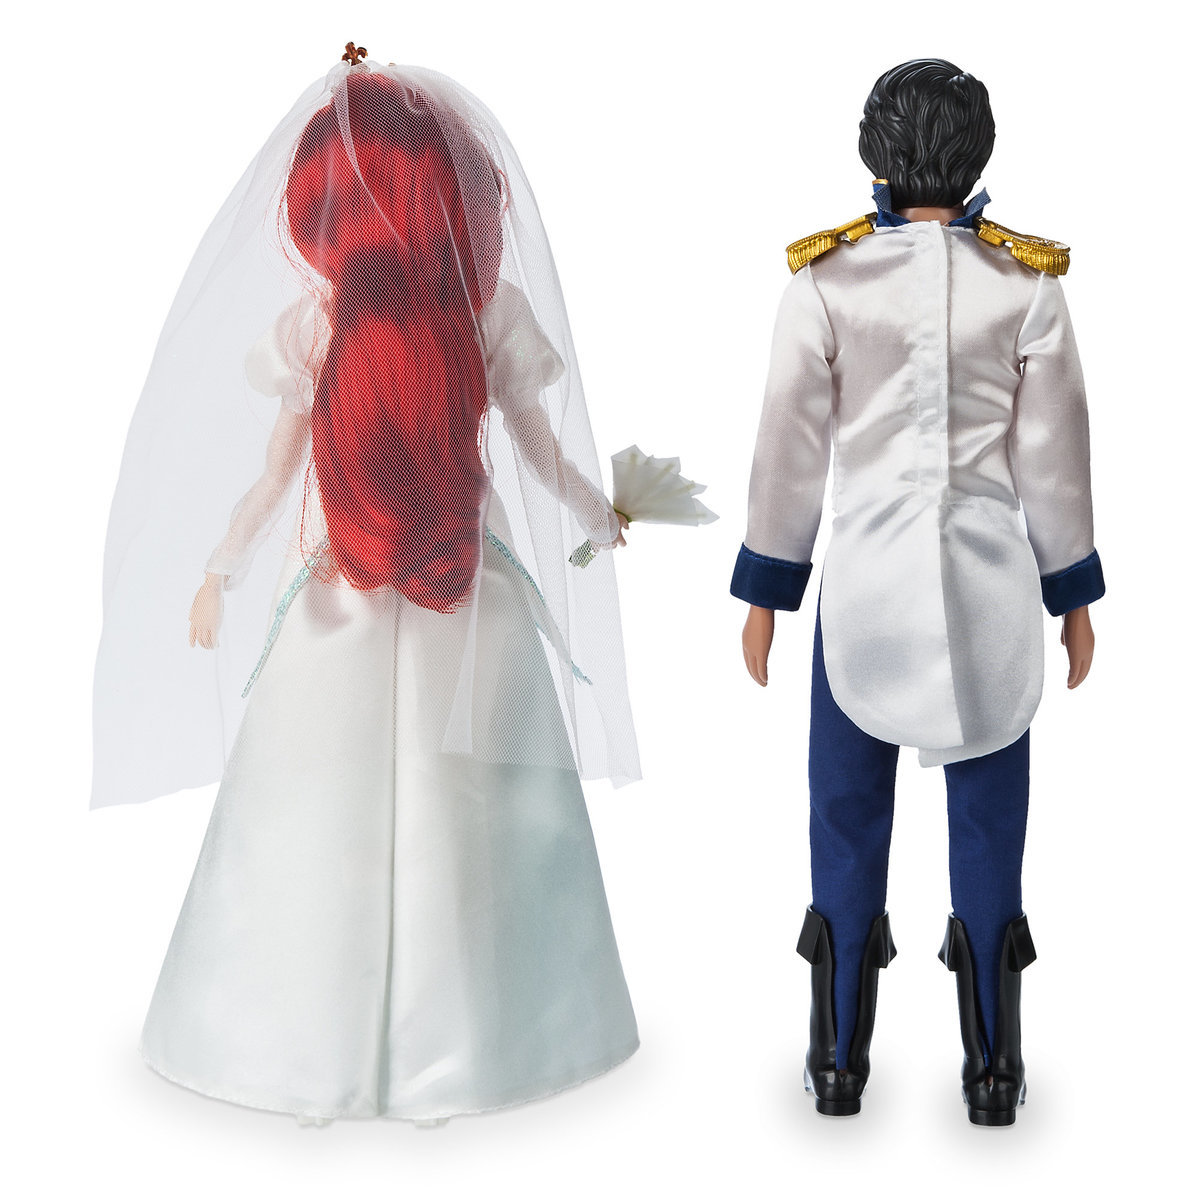 c955b6c16d349 Product Image of Ariel and Eric Classic Wedding Doll Set - The Little  Mermaid # 2